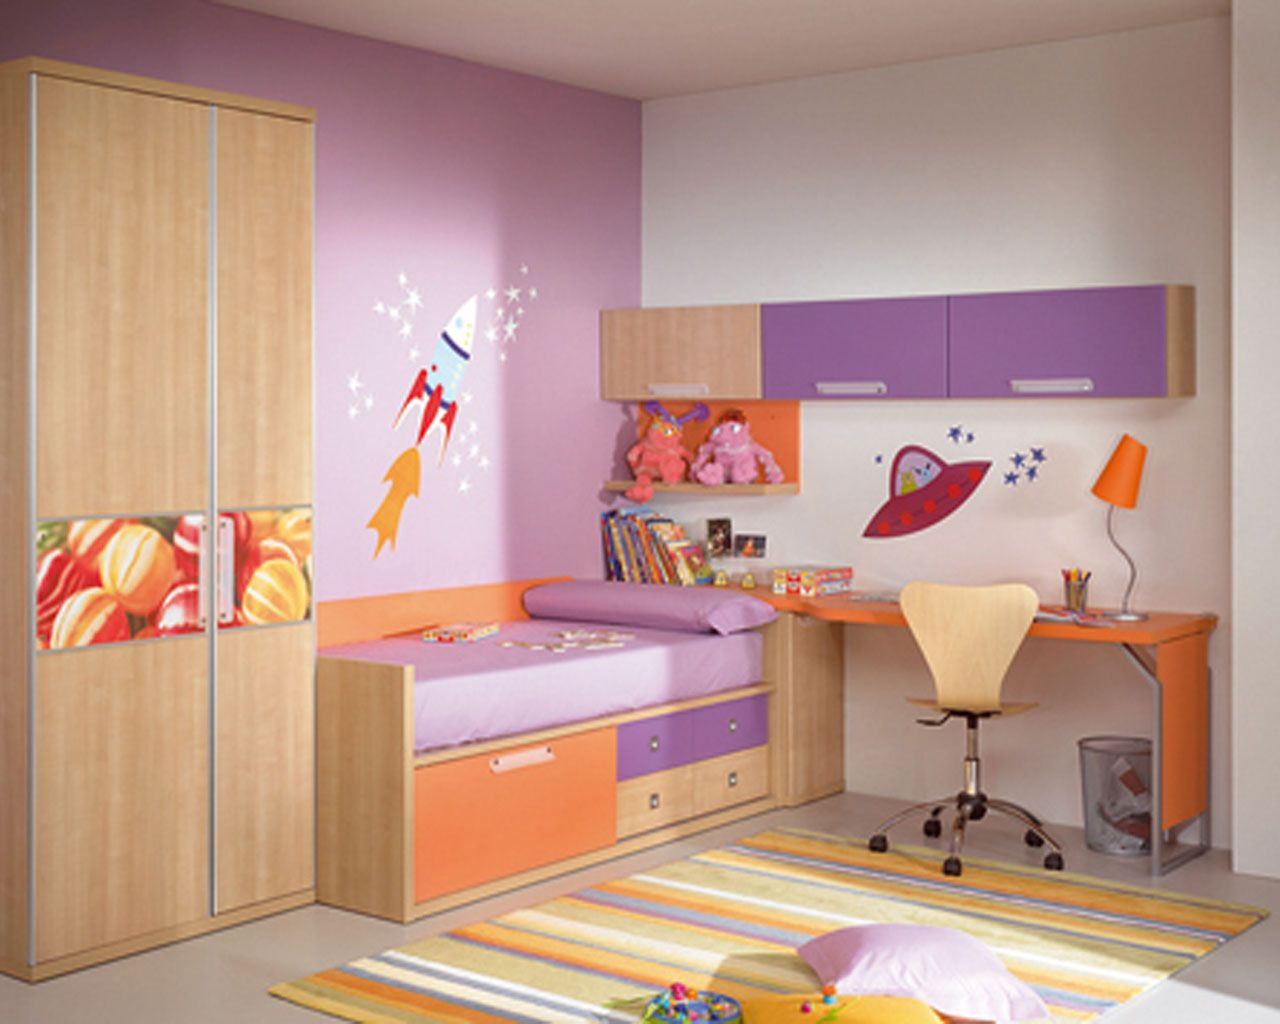 Kids Room Design. 1. . Blue Decorating At Small Kids Room Design ...